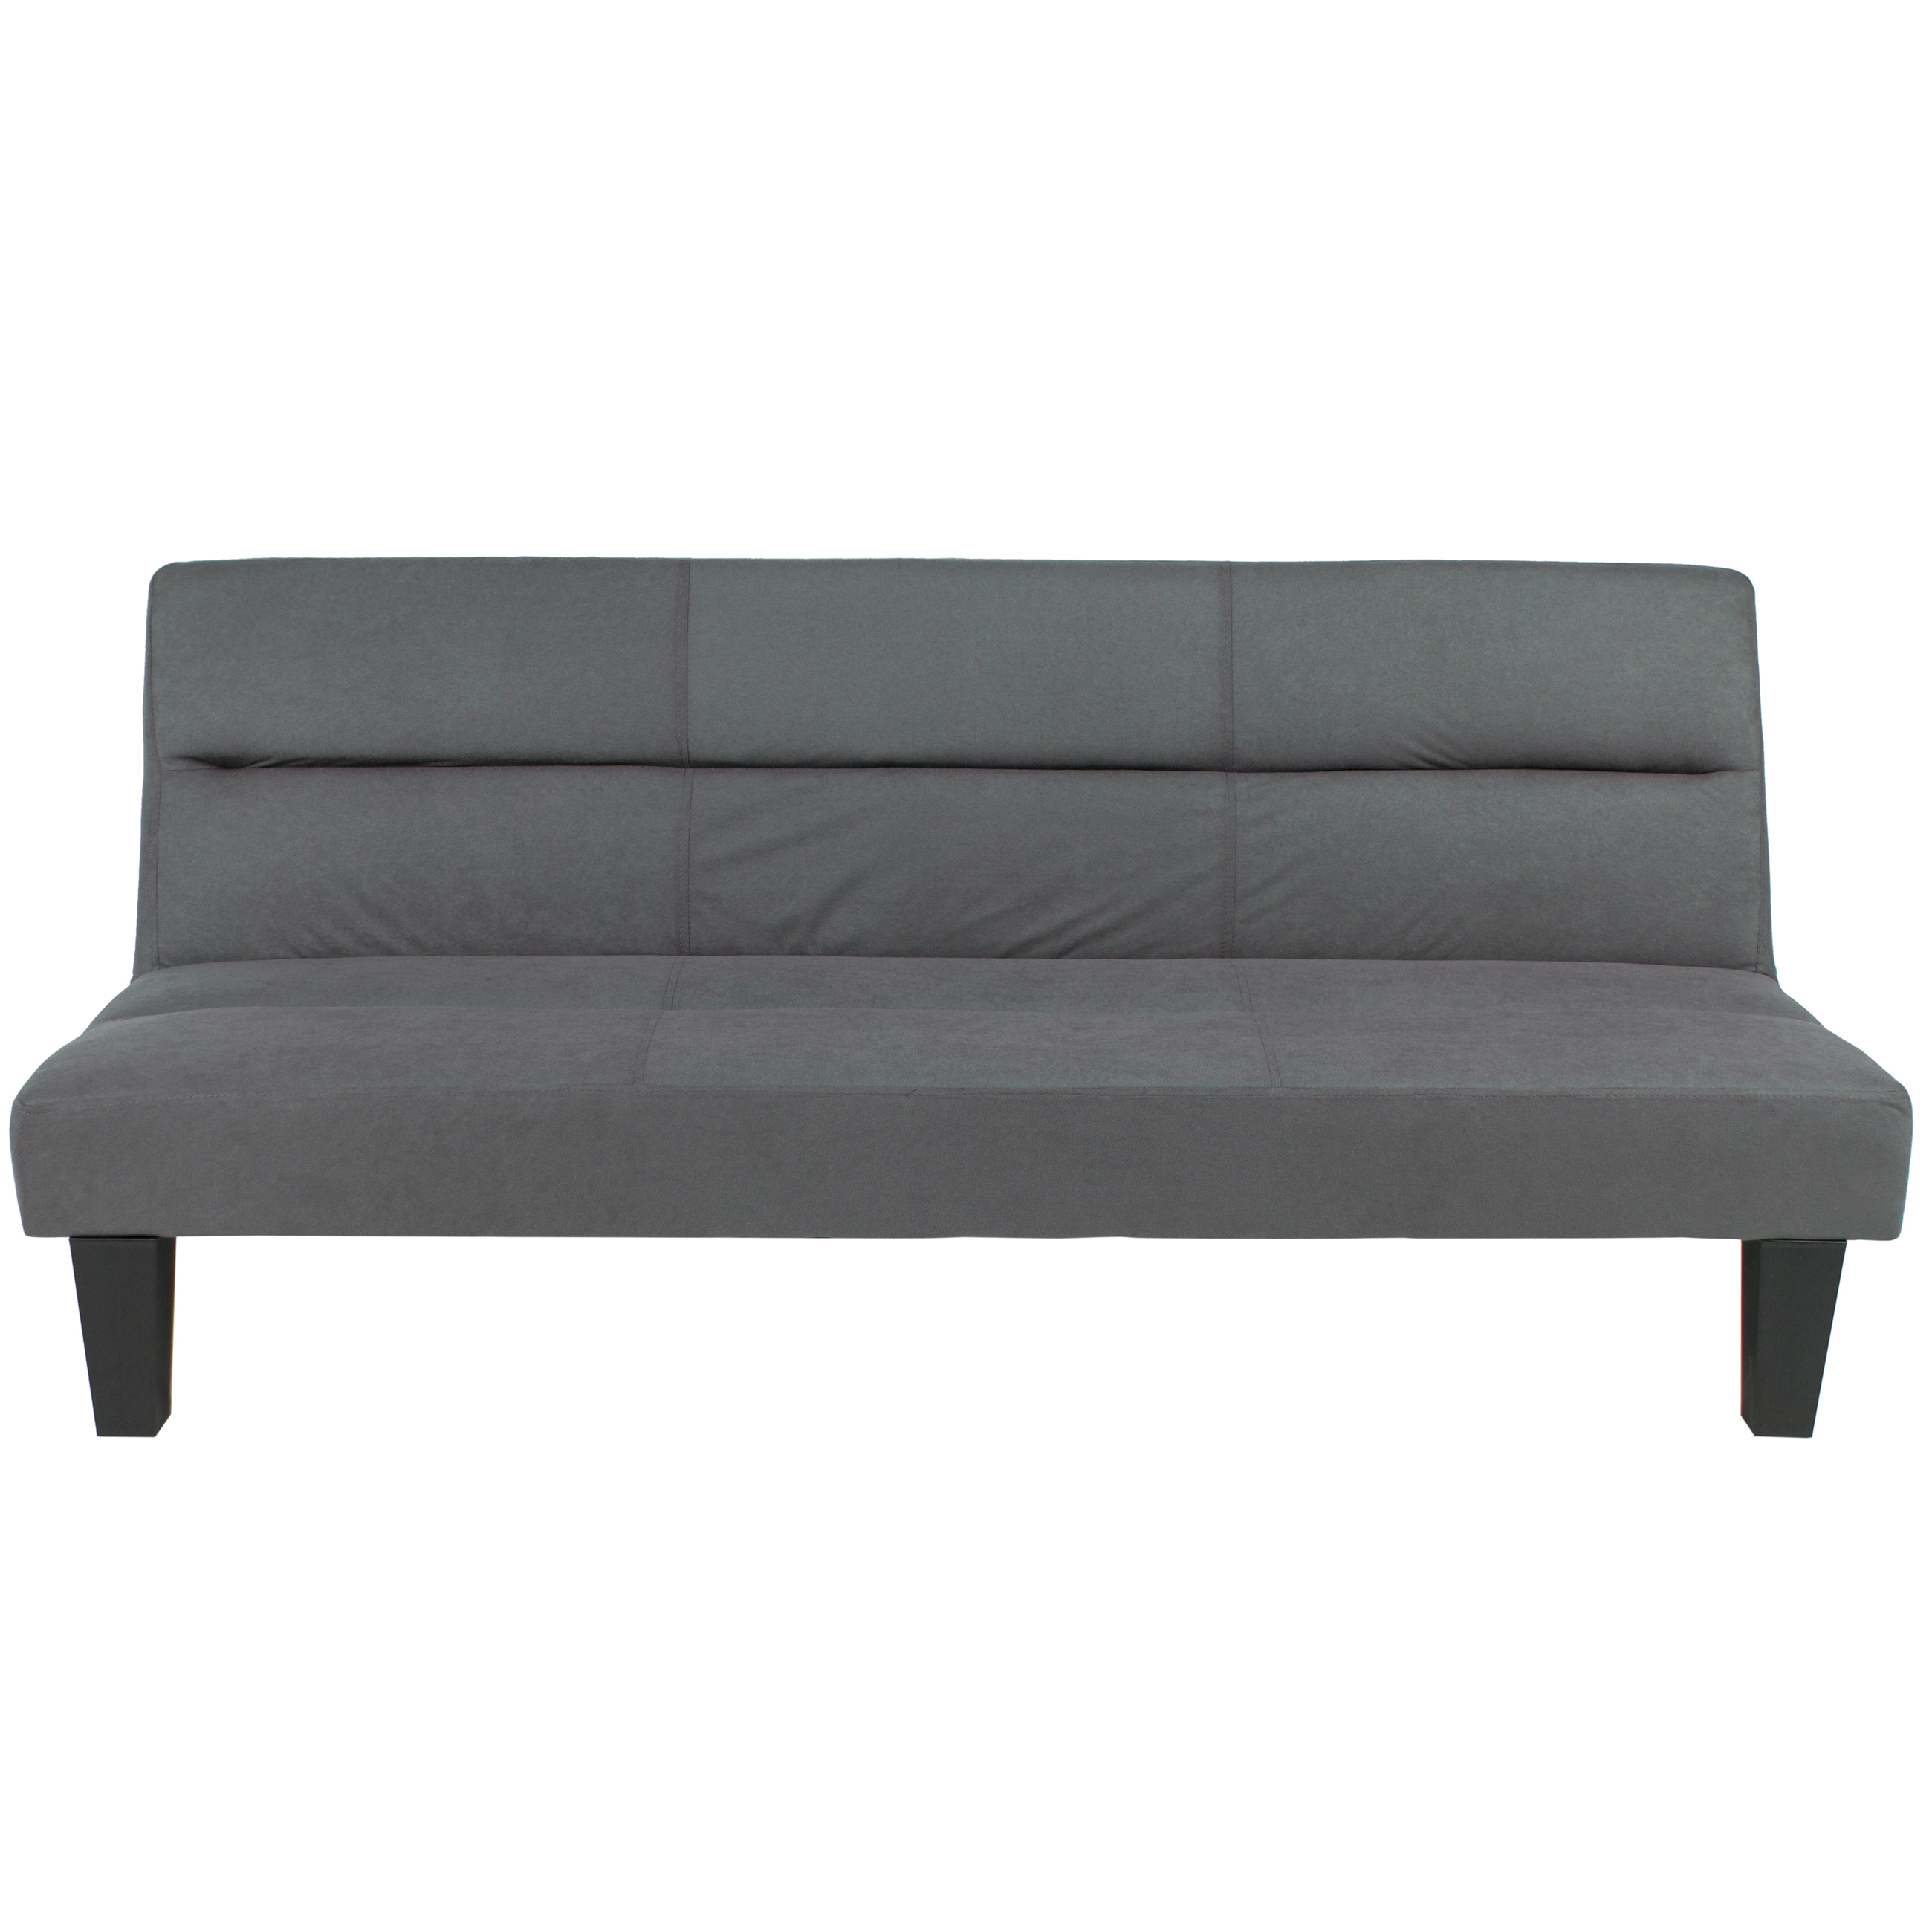 Best Choice Products Microfiber Futon Folding Couch Sofa Gray